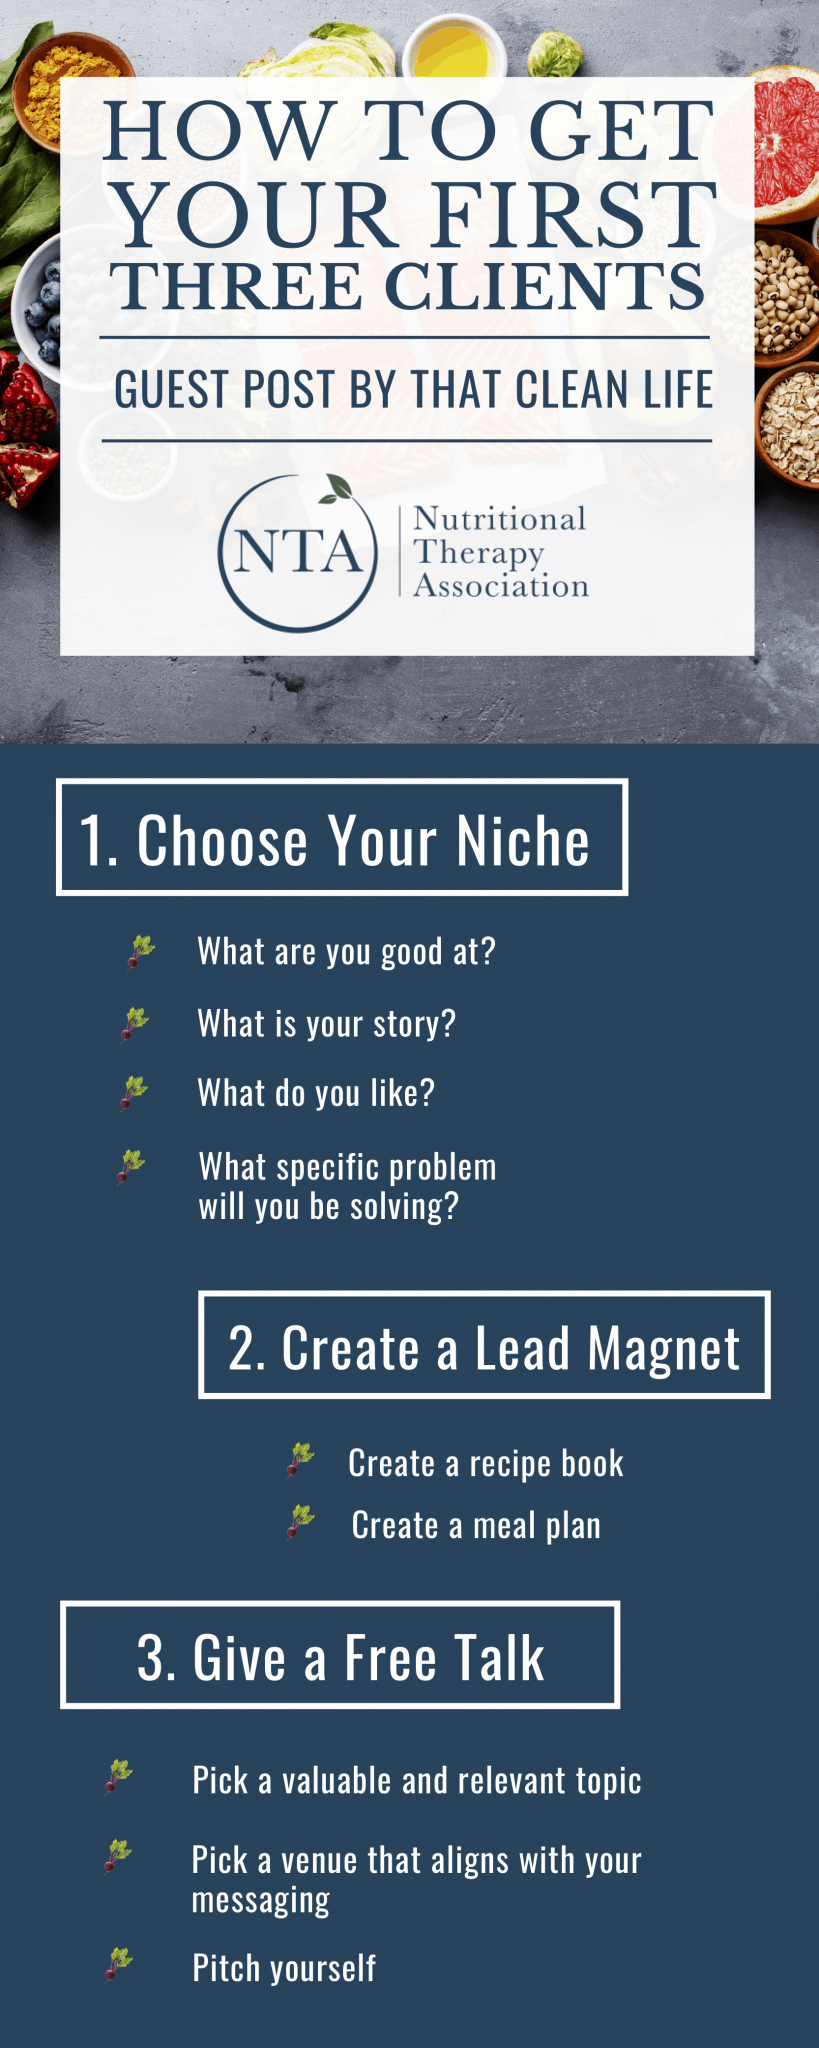 How To Get Your First Three Clients Infographic